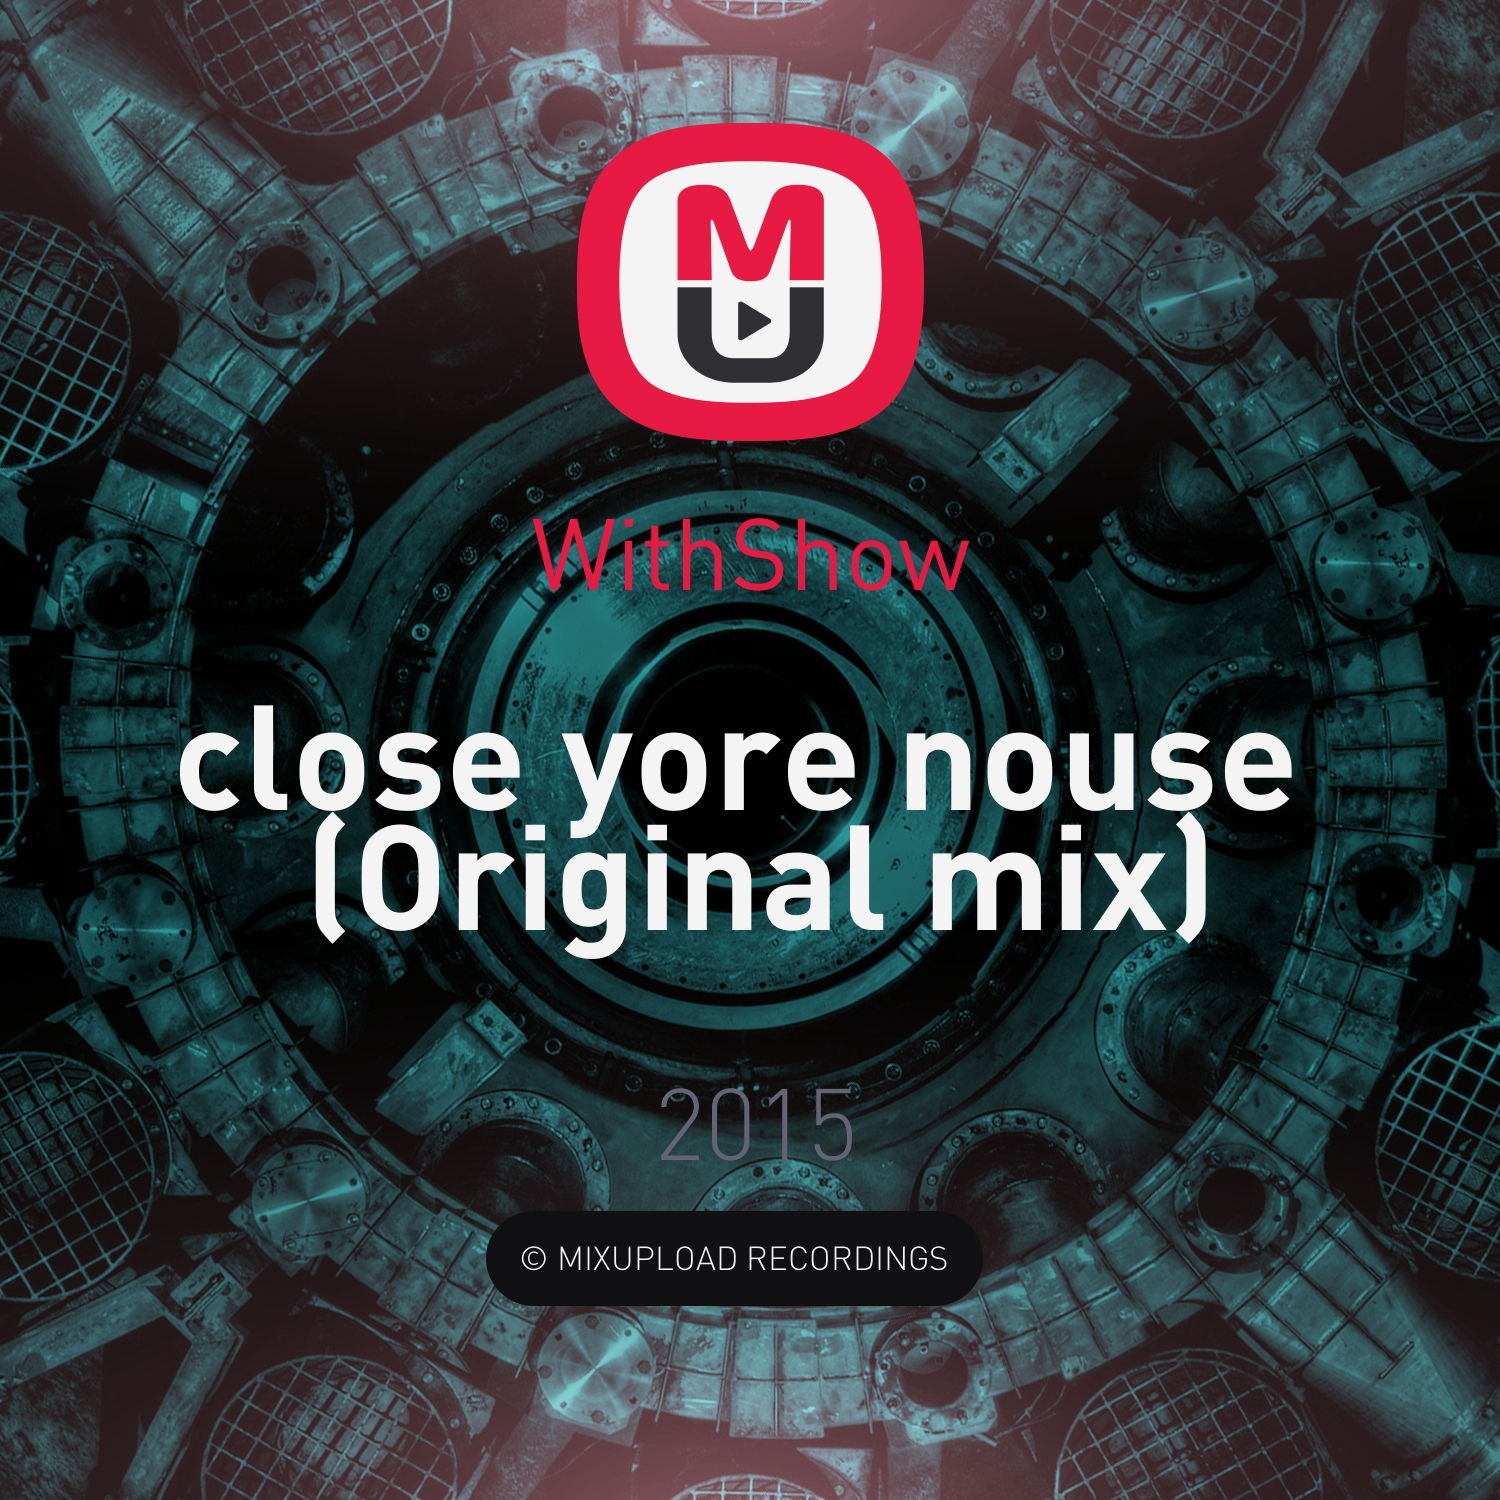 WithShow - close yore nouse (Original mix)